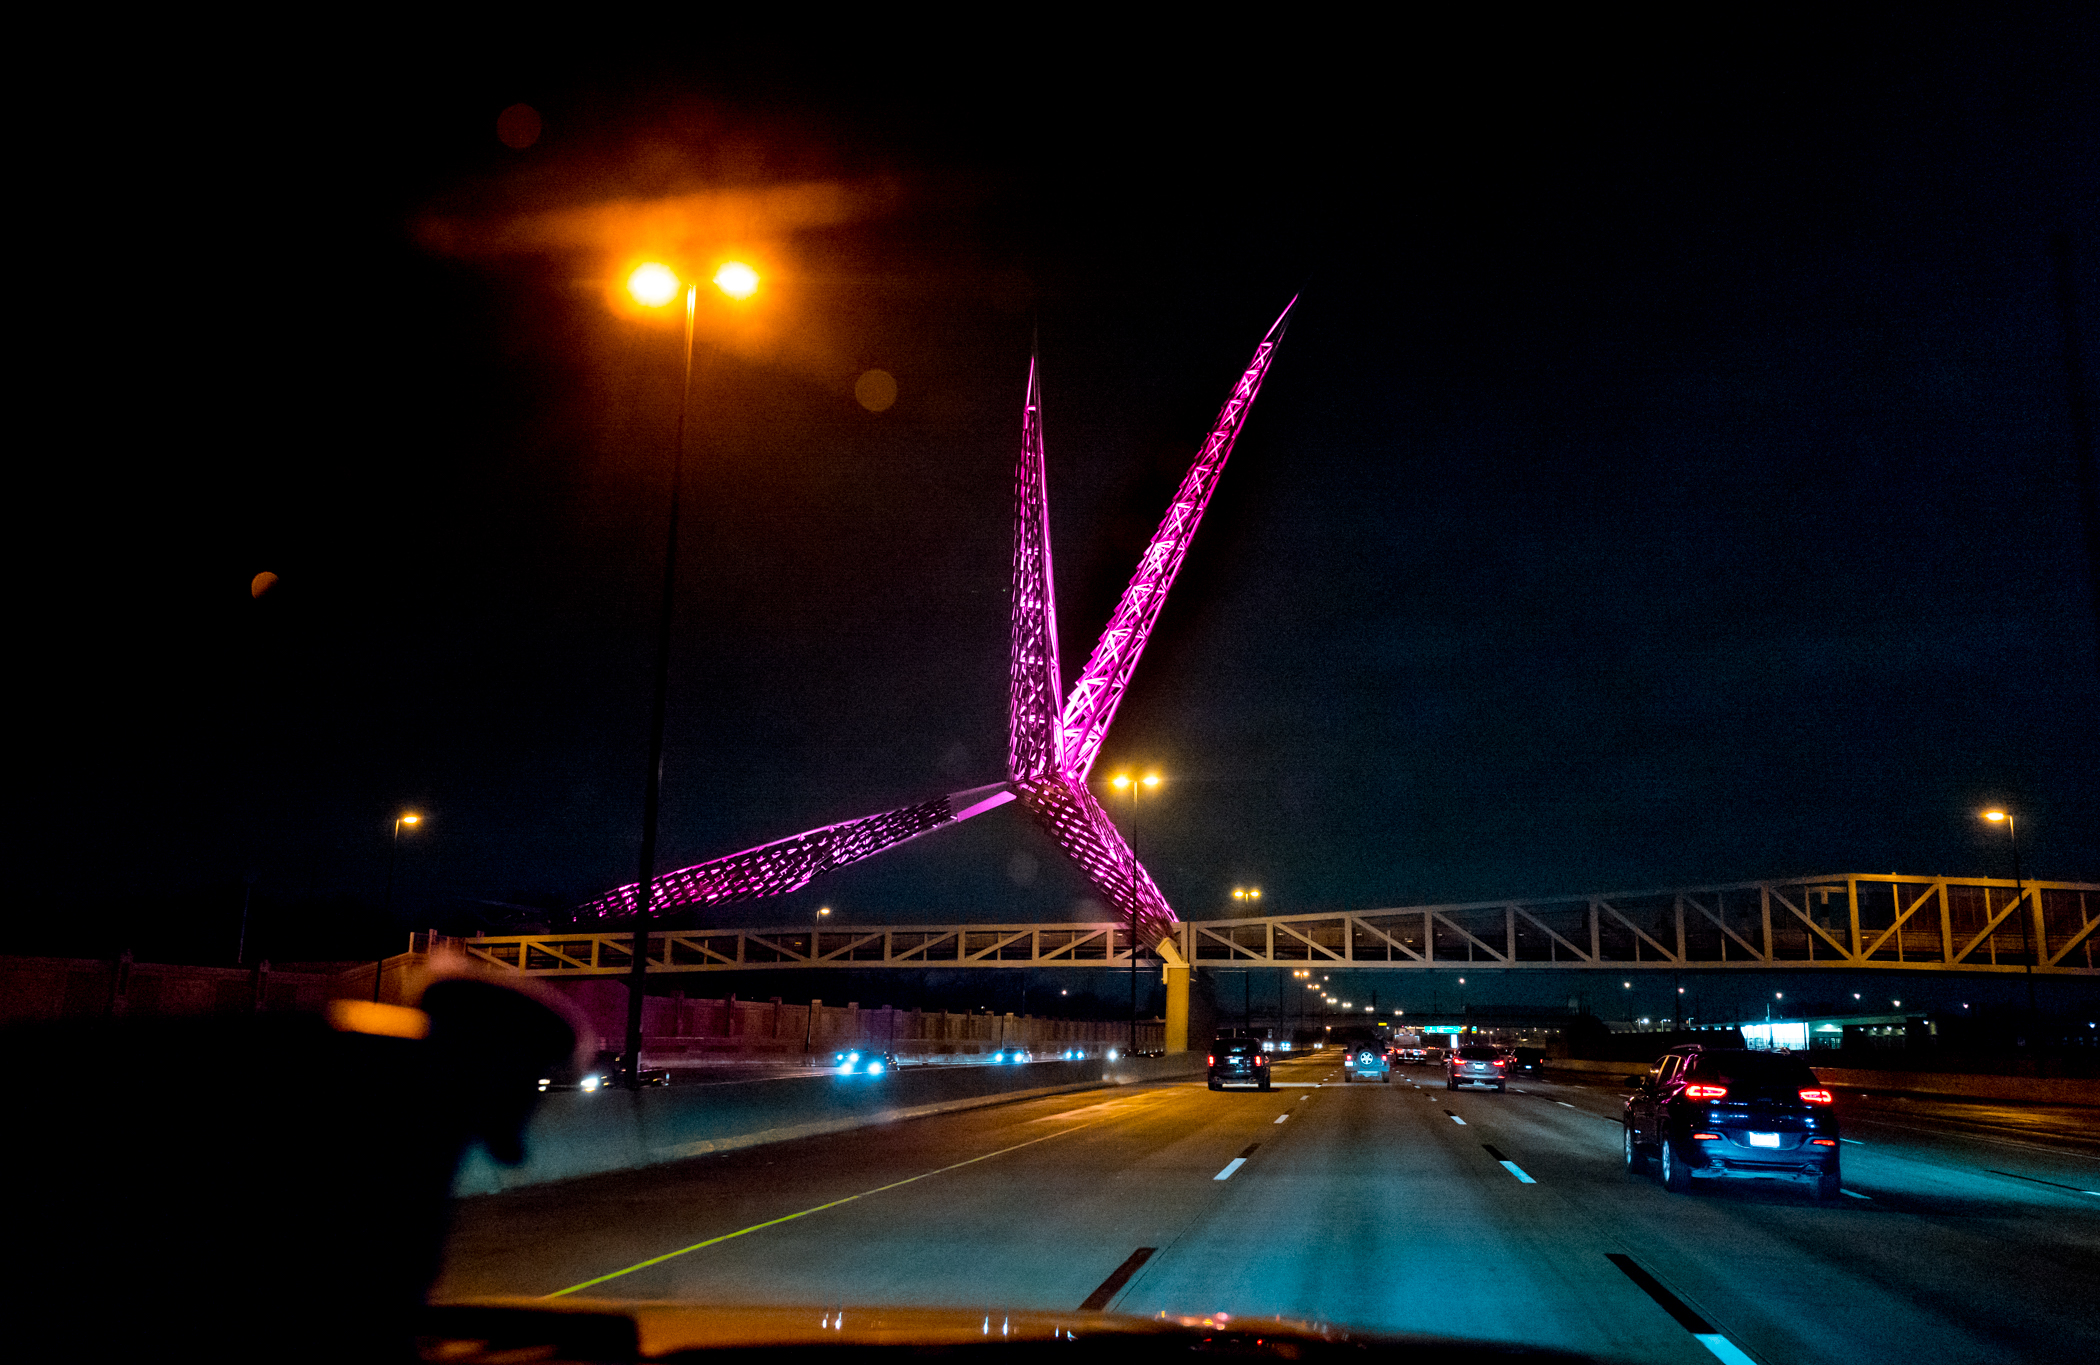 Skydance Bridge over I-40 in Oklahoma City